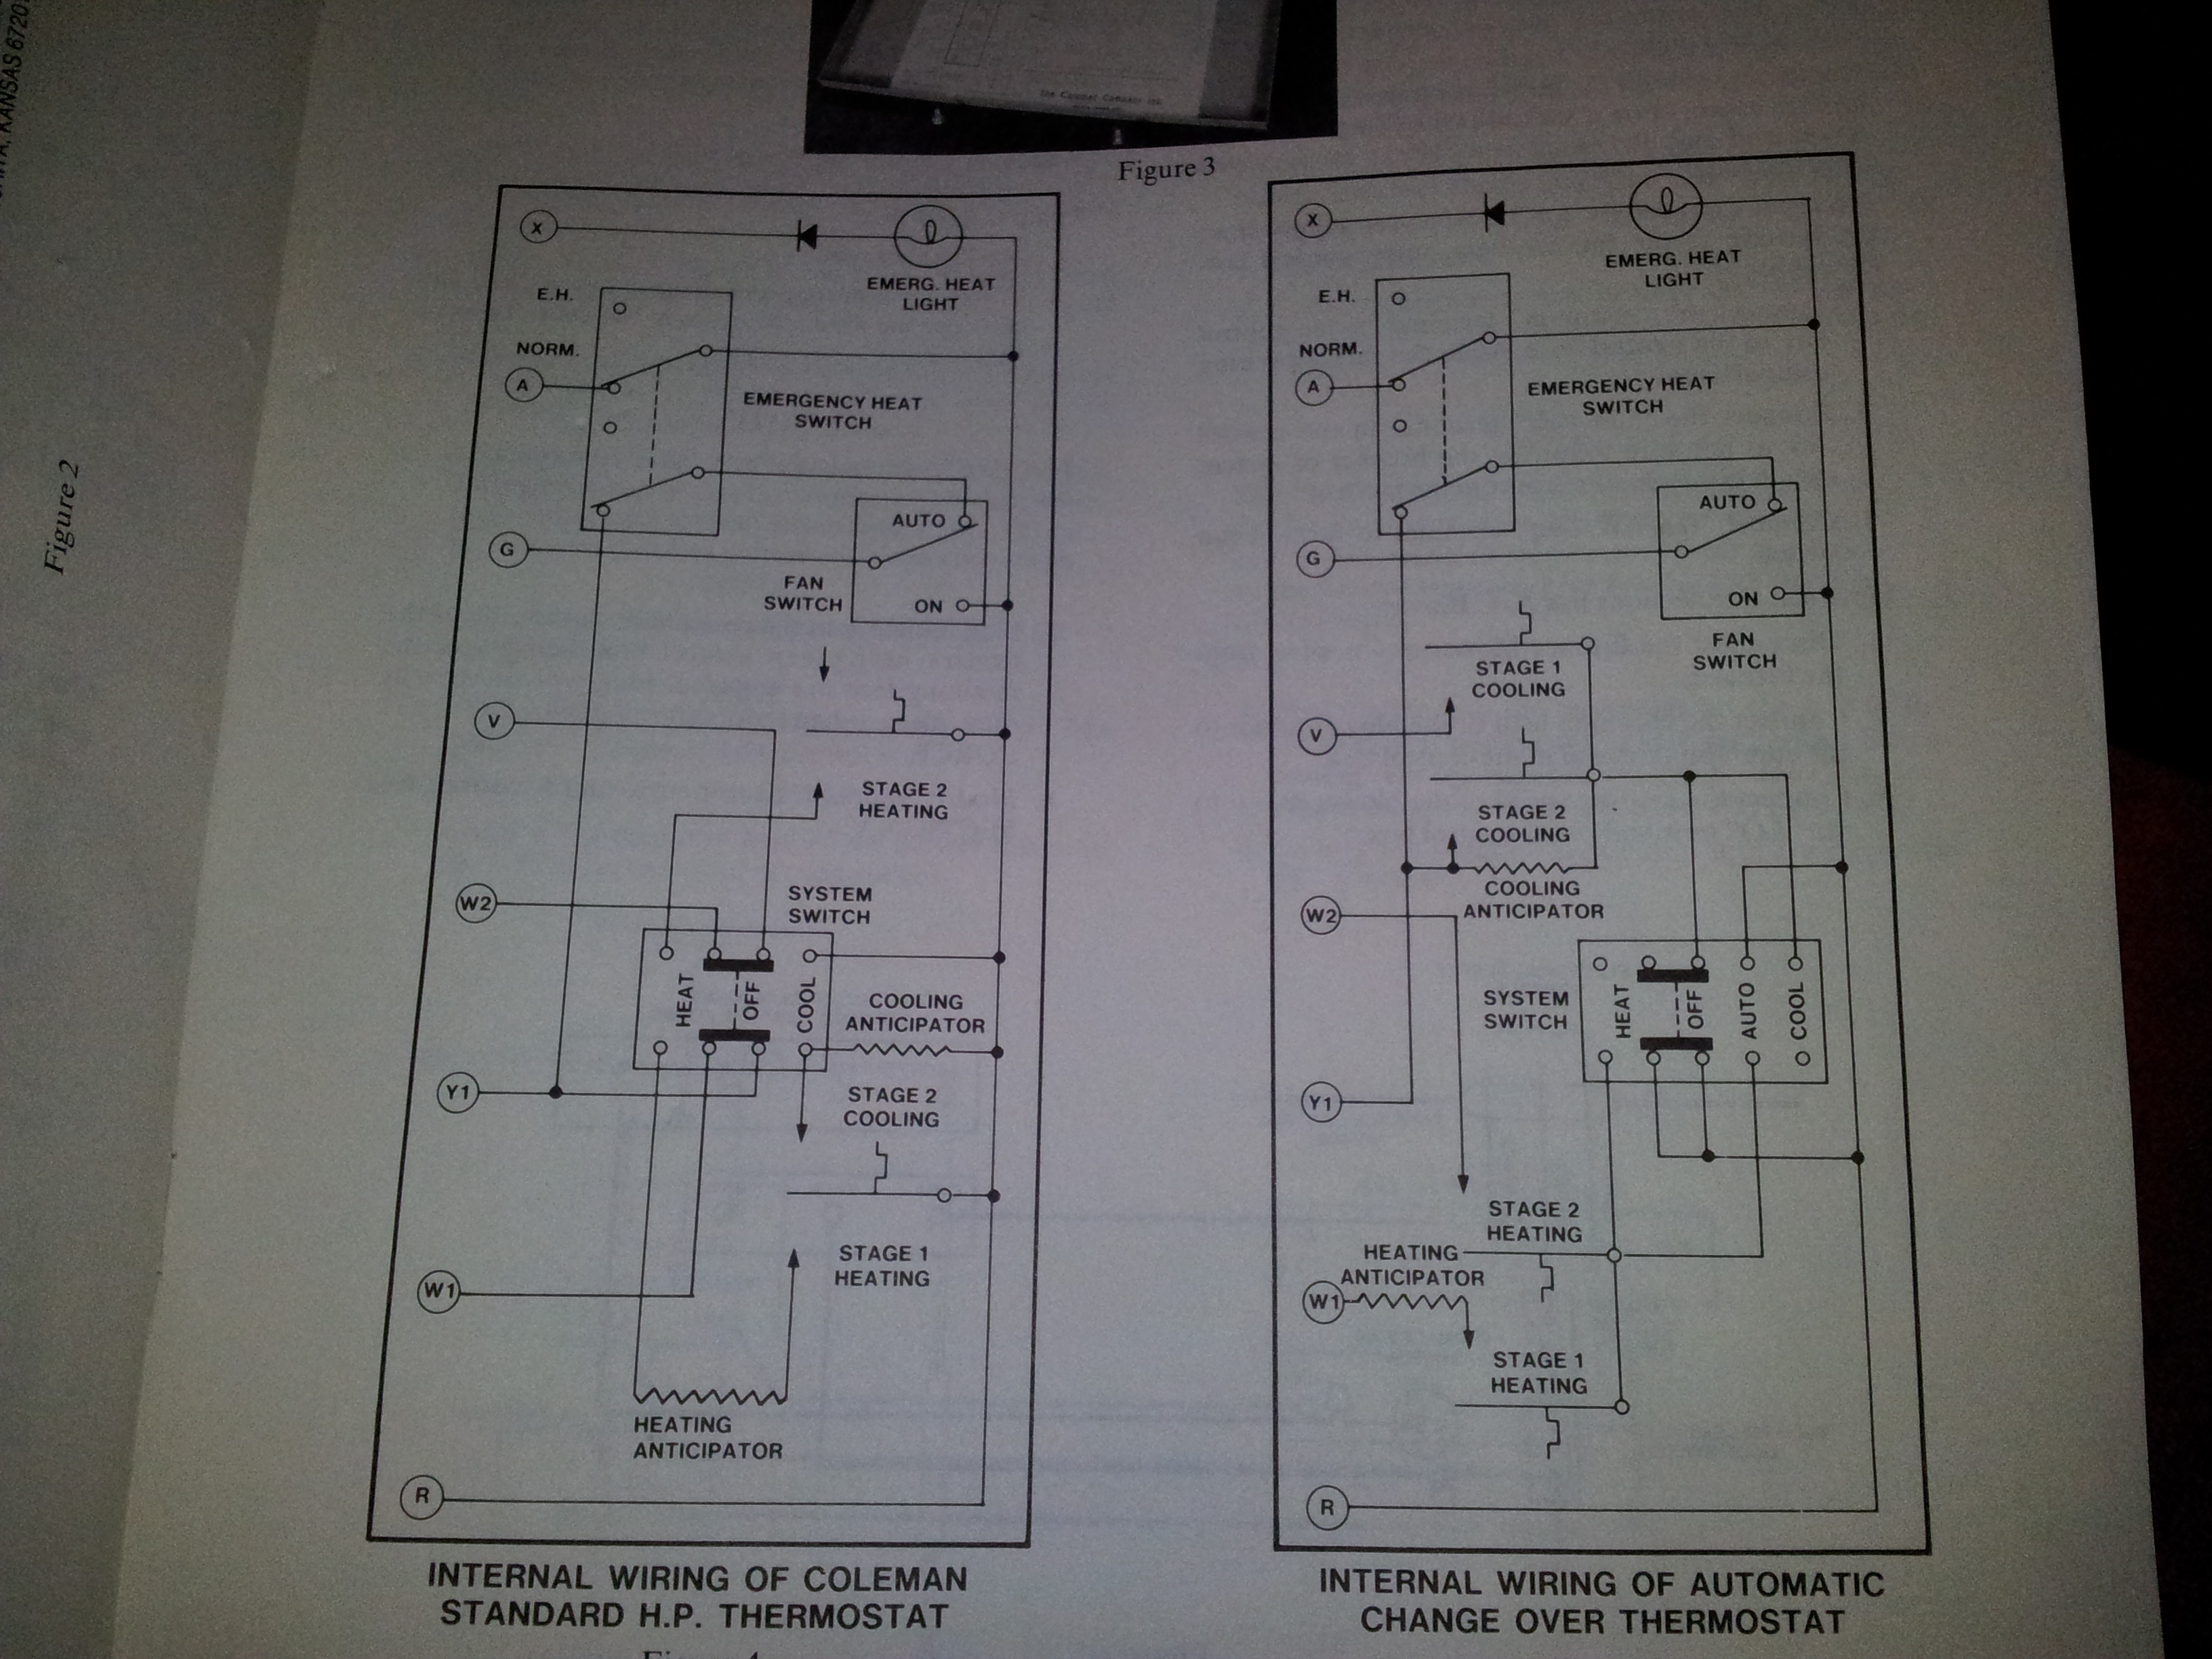 Snap Honeywell Thermostat Rth7600 Wiring Diagram 43 Trane Baystat 239 Rth8500d 3 Wire 40 Images Diagrams 138dhw